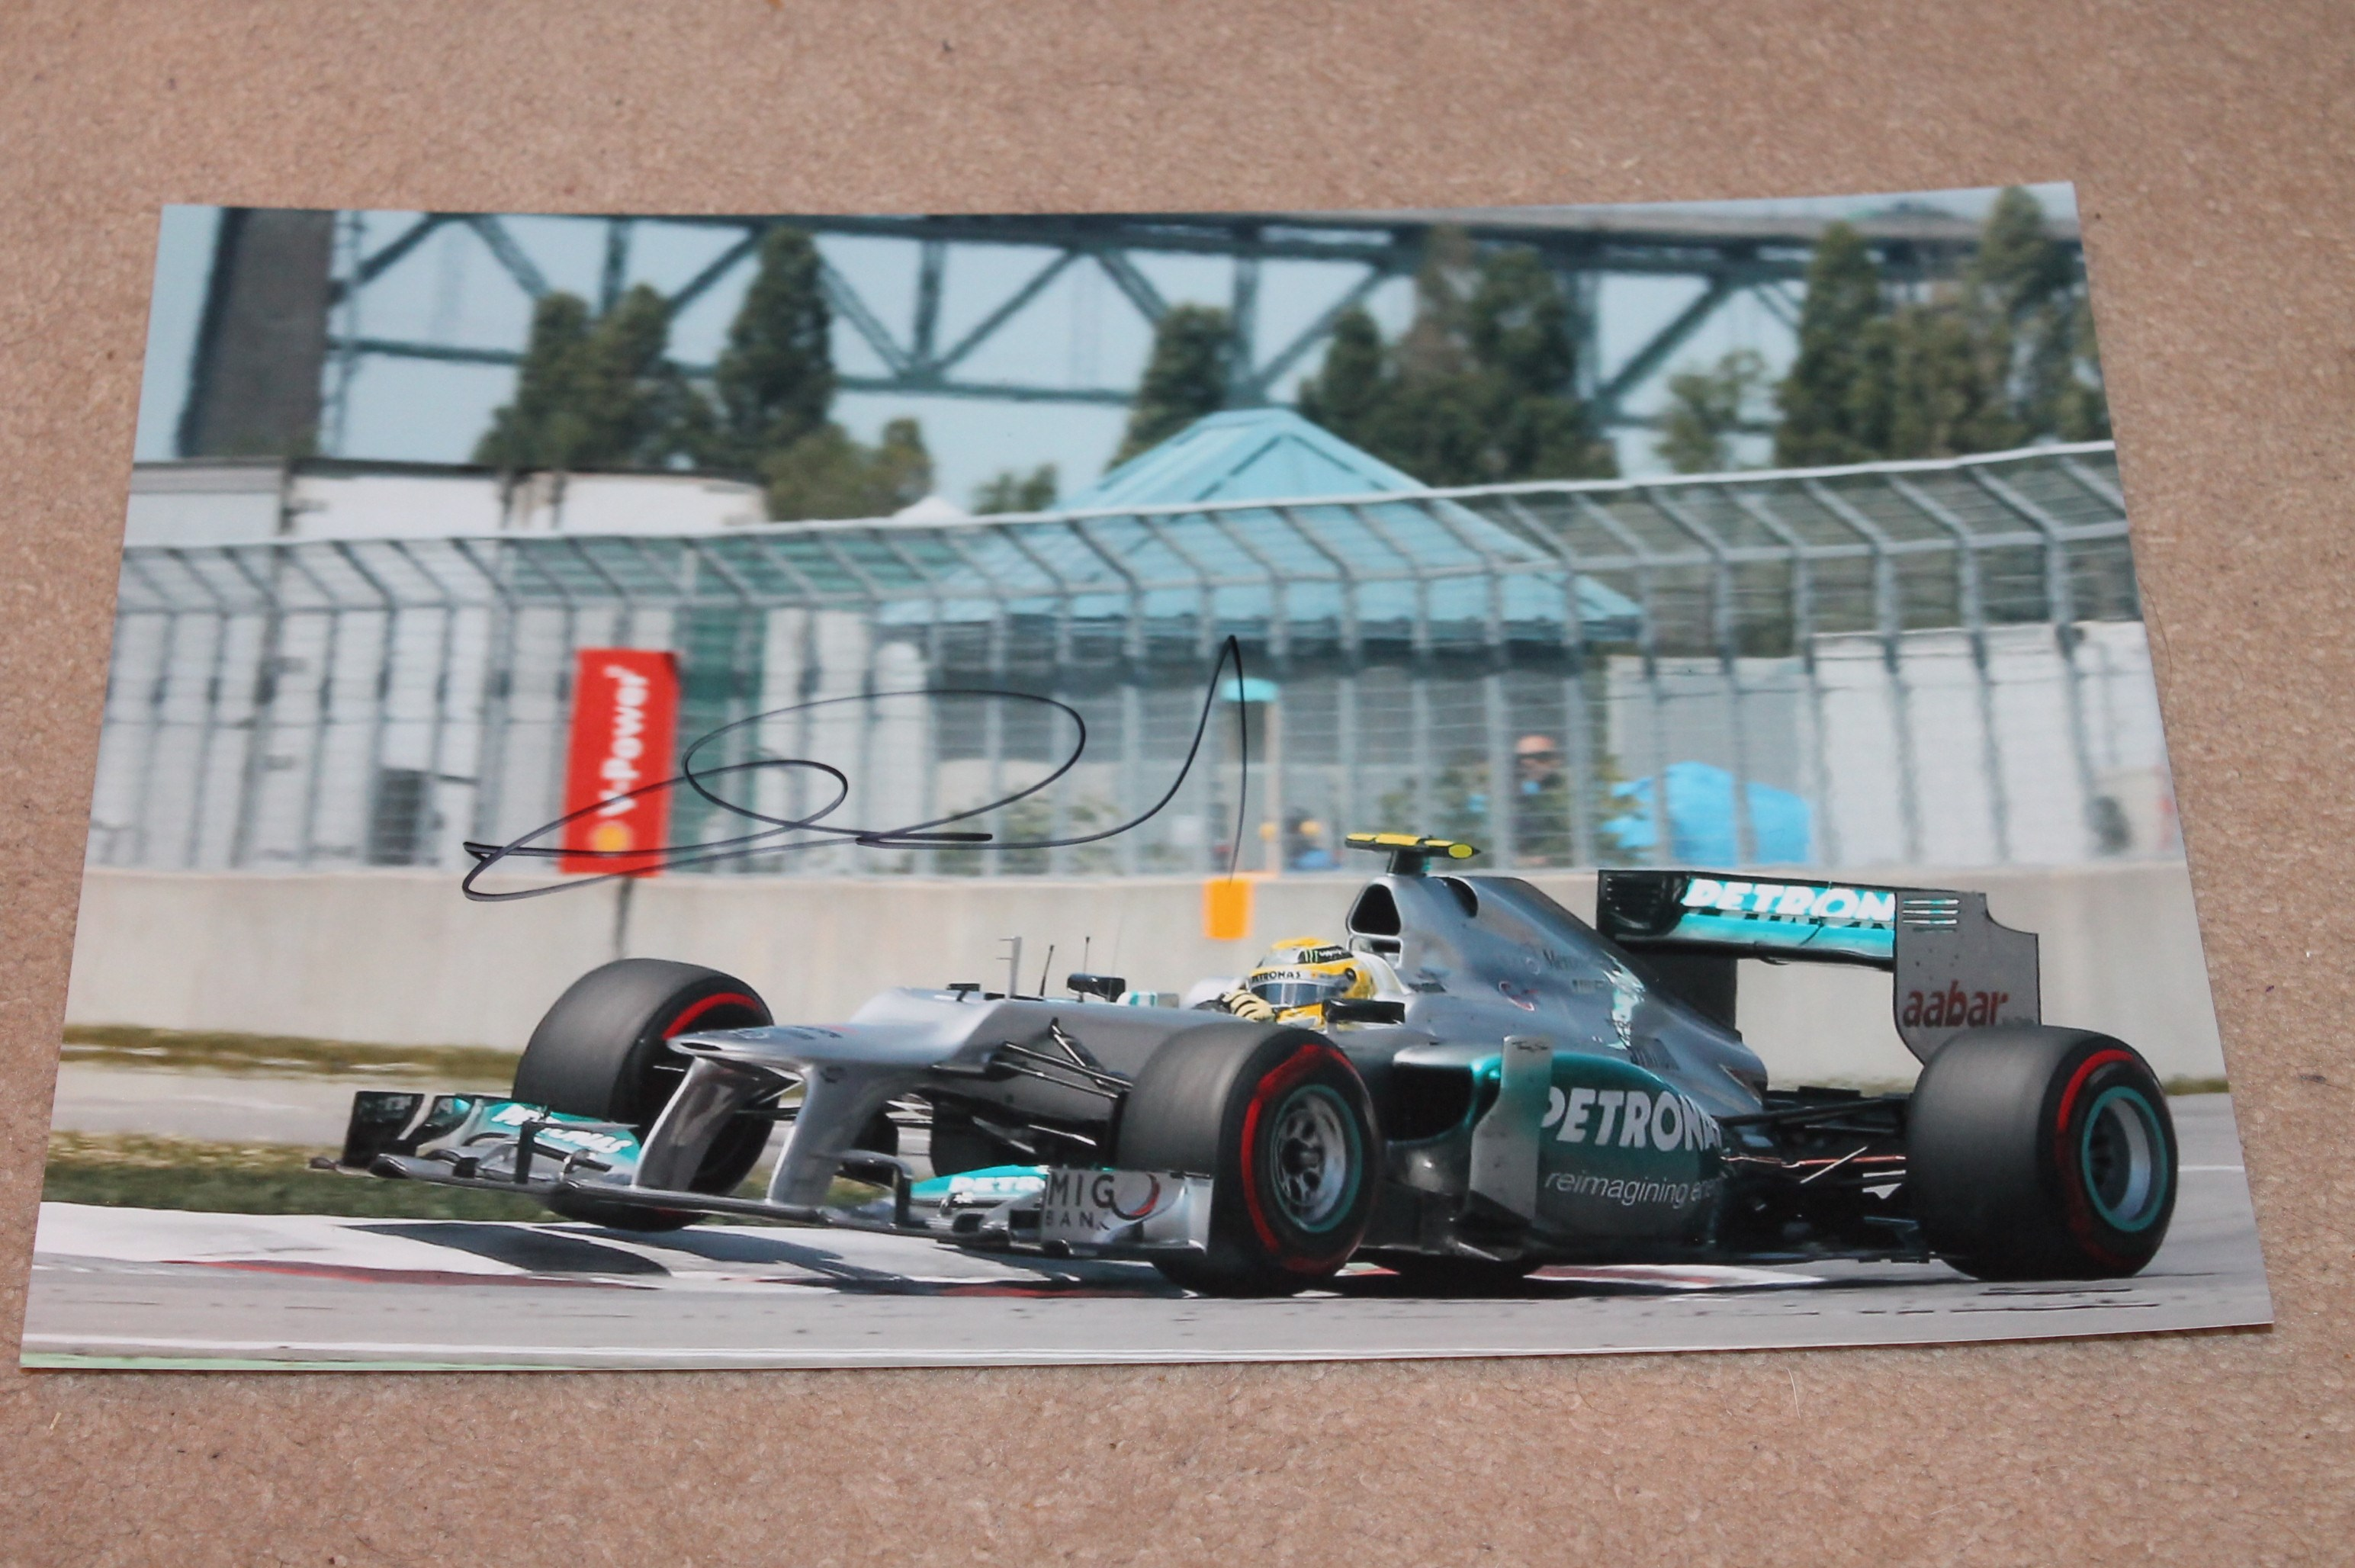 NICO ROSBERG SIGNED PICTURE